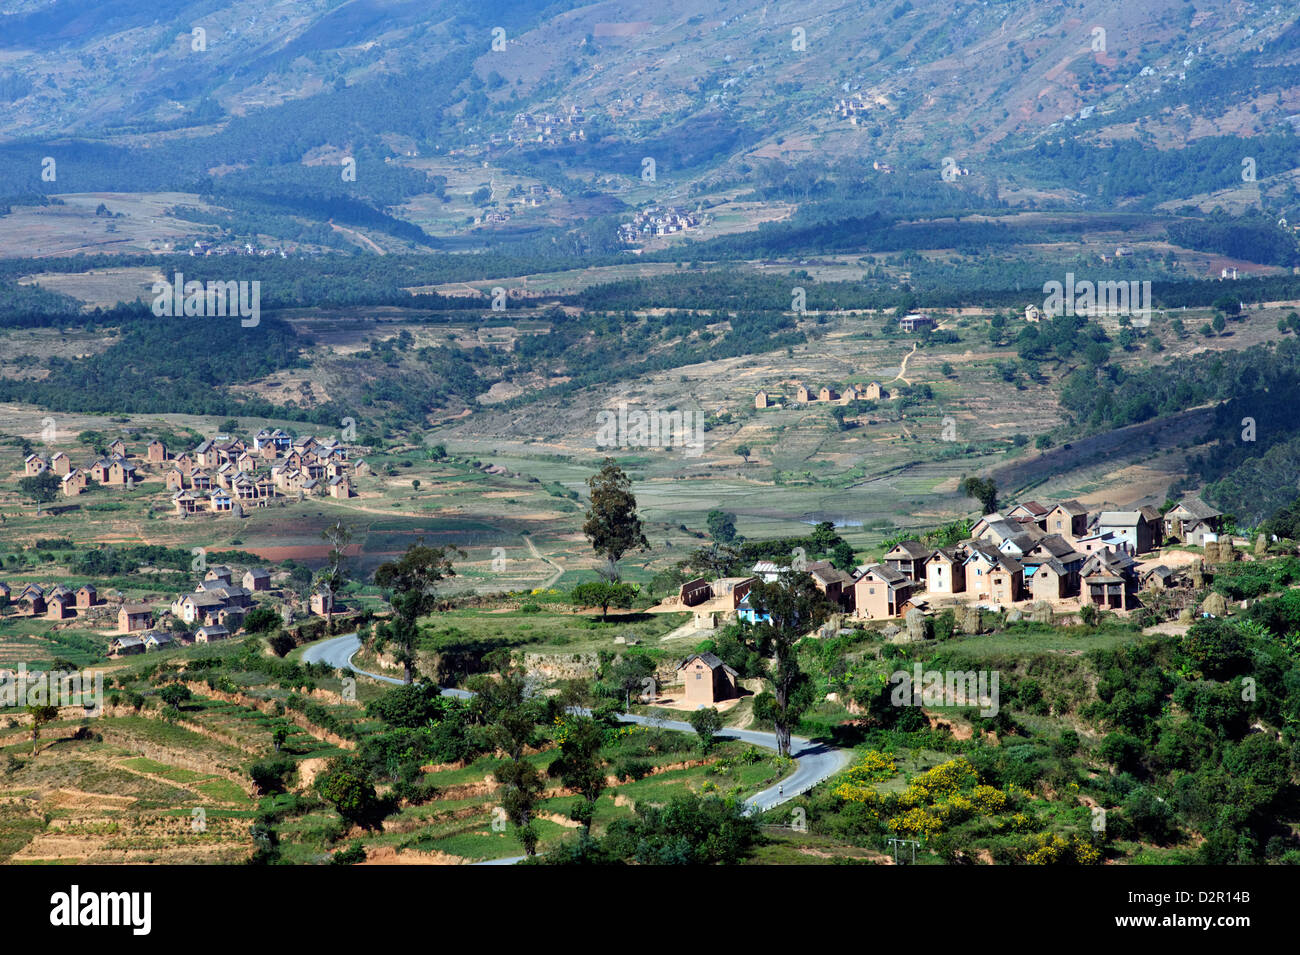 Landscape of the central highlands in the region of Ankaratra, Madagascar, Africa - Stock Image